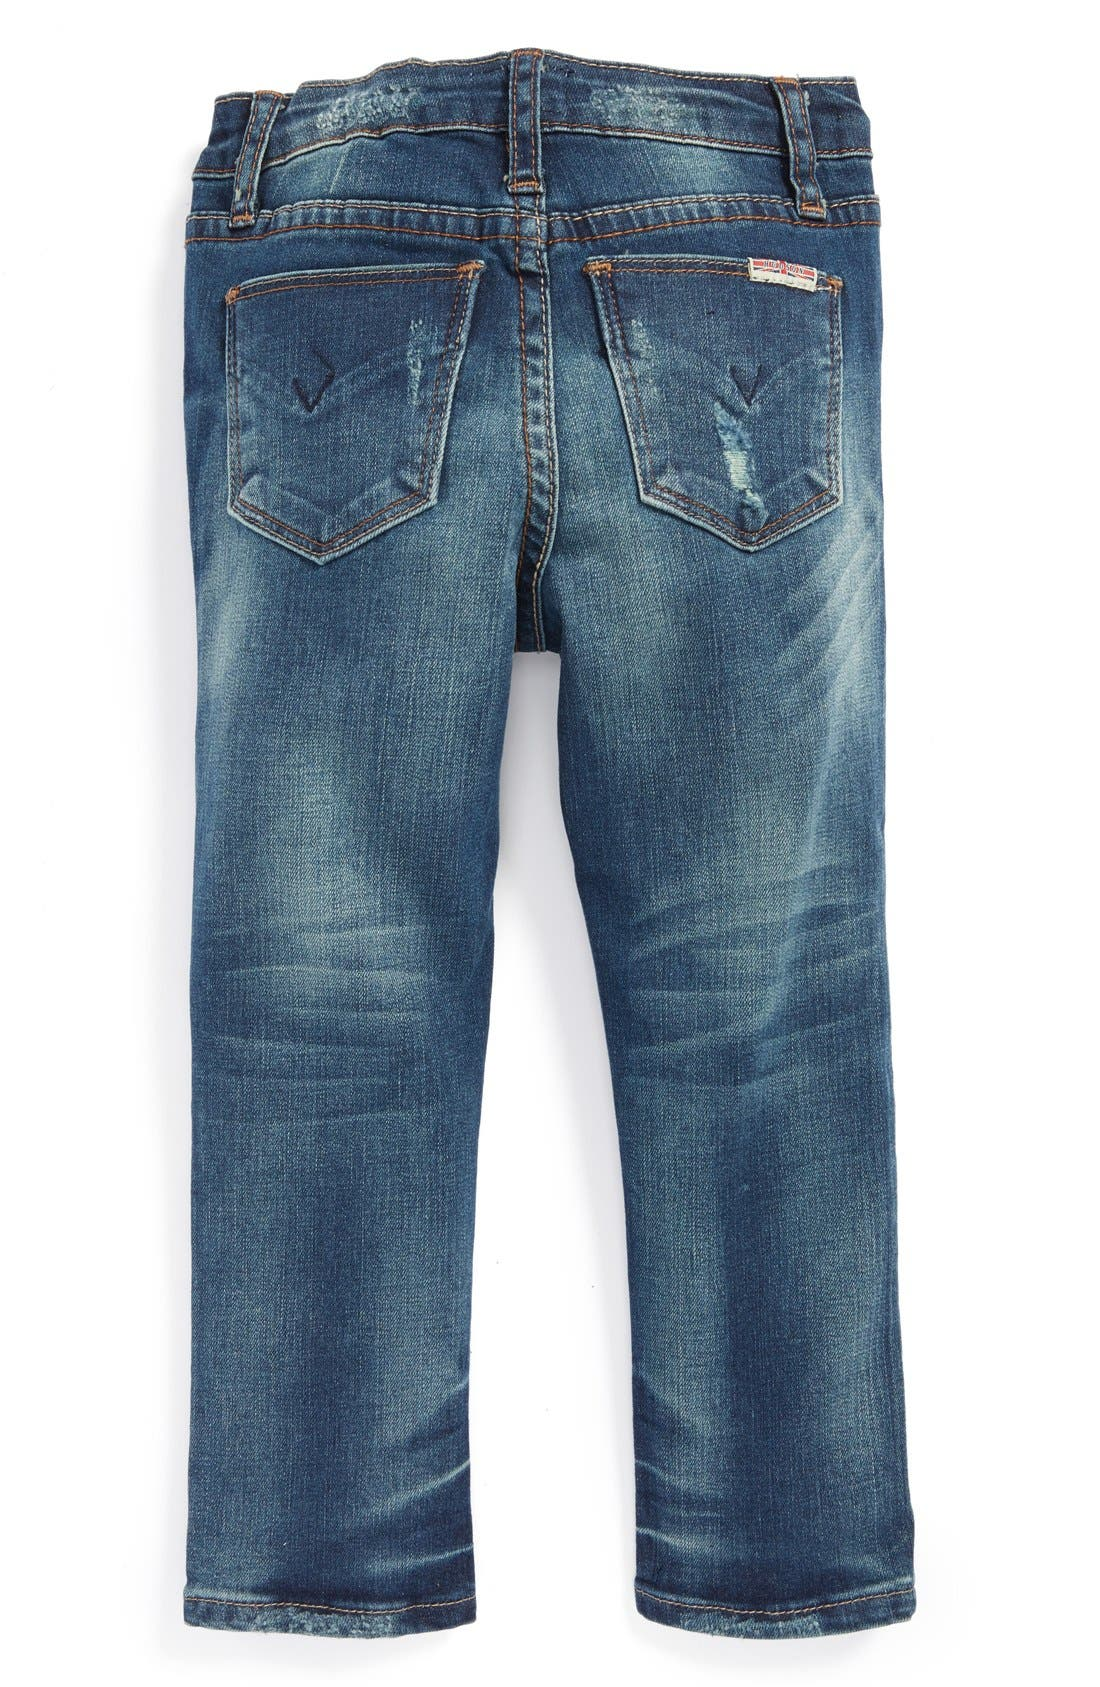 Alternate Image 1 Selected - Hudson Kids 'Dolly' Distressed Skinny Jeans (Toddler Girls)